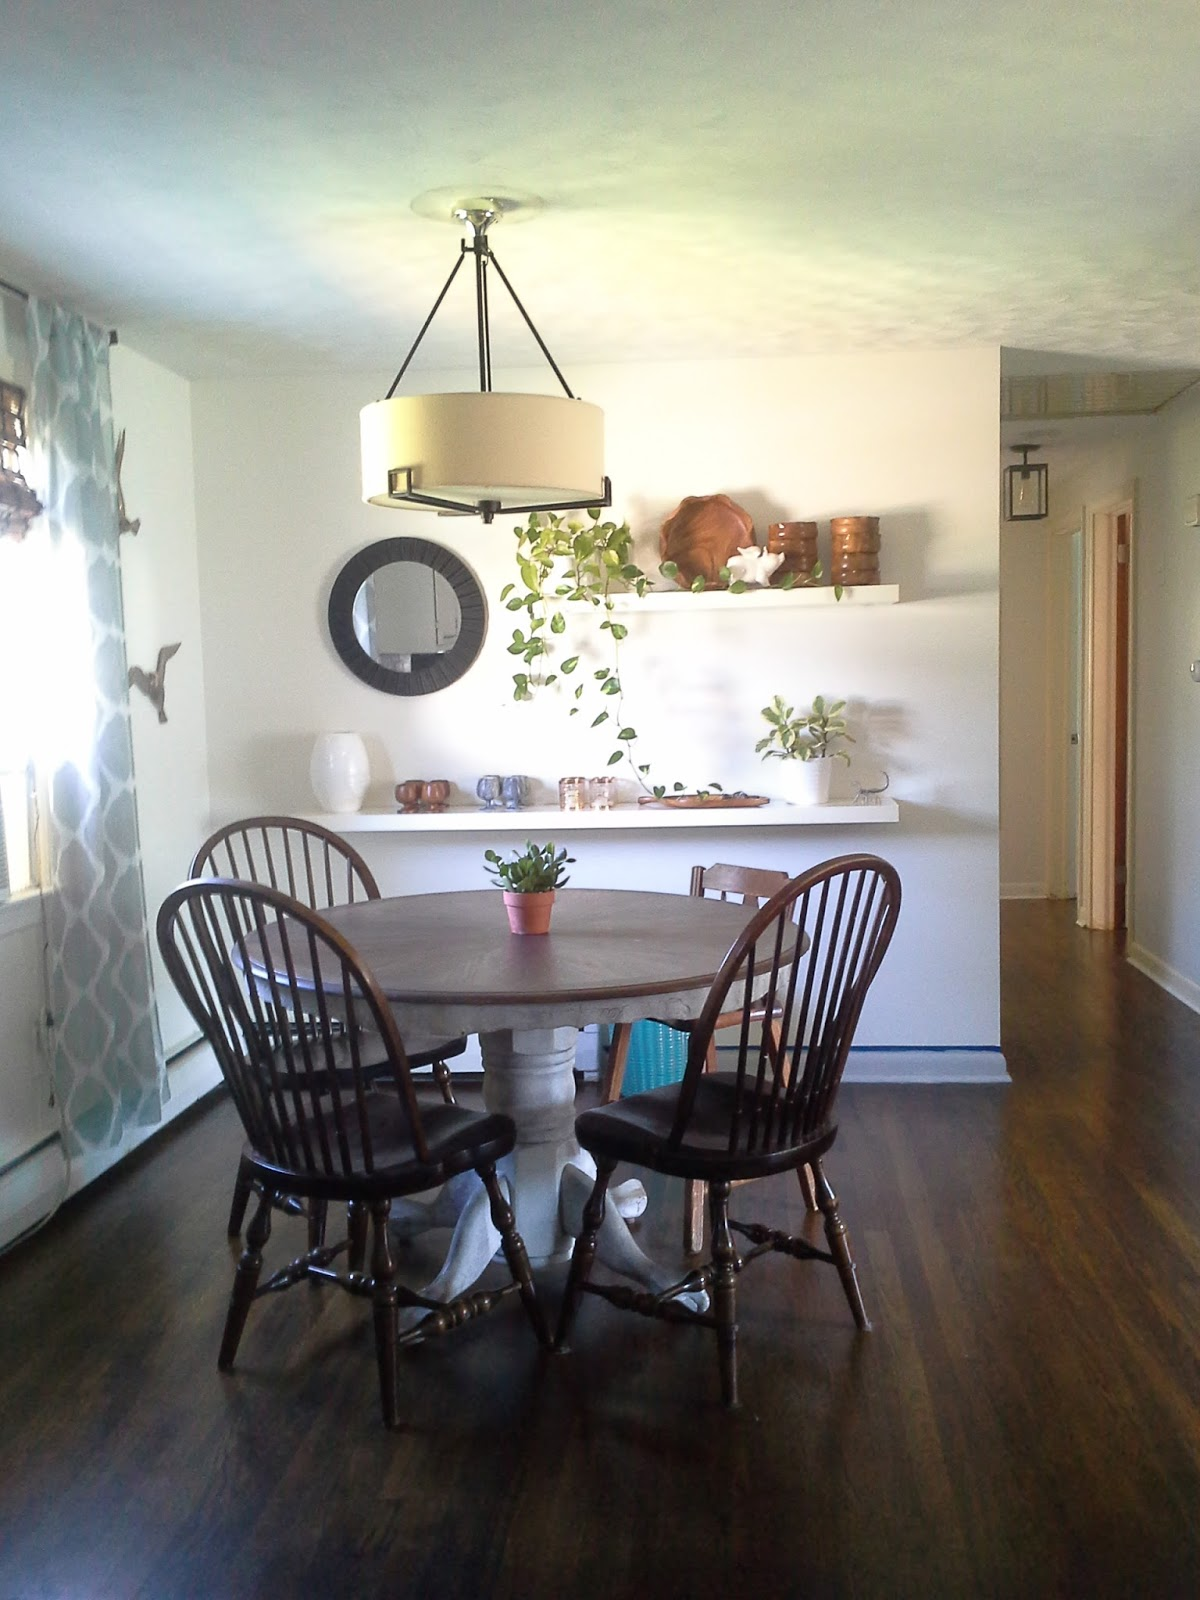 Lilly's Home Designs: Dine with us